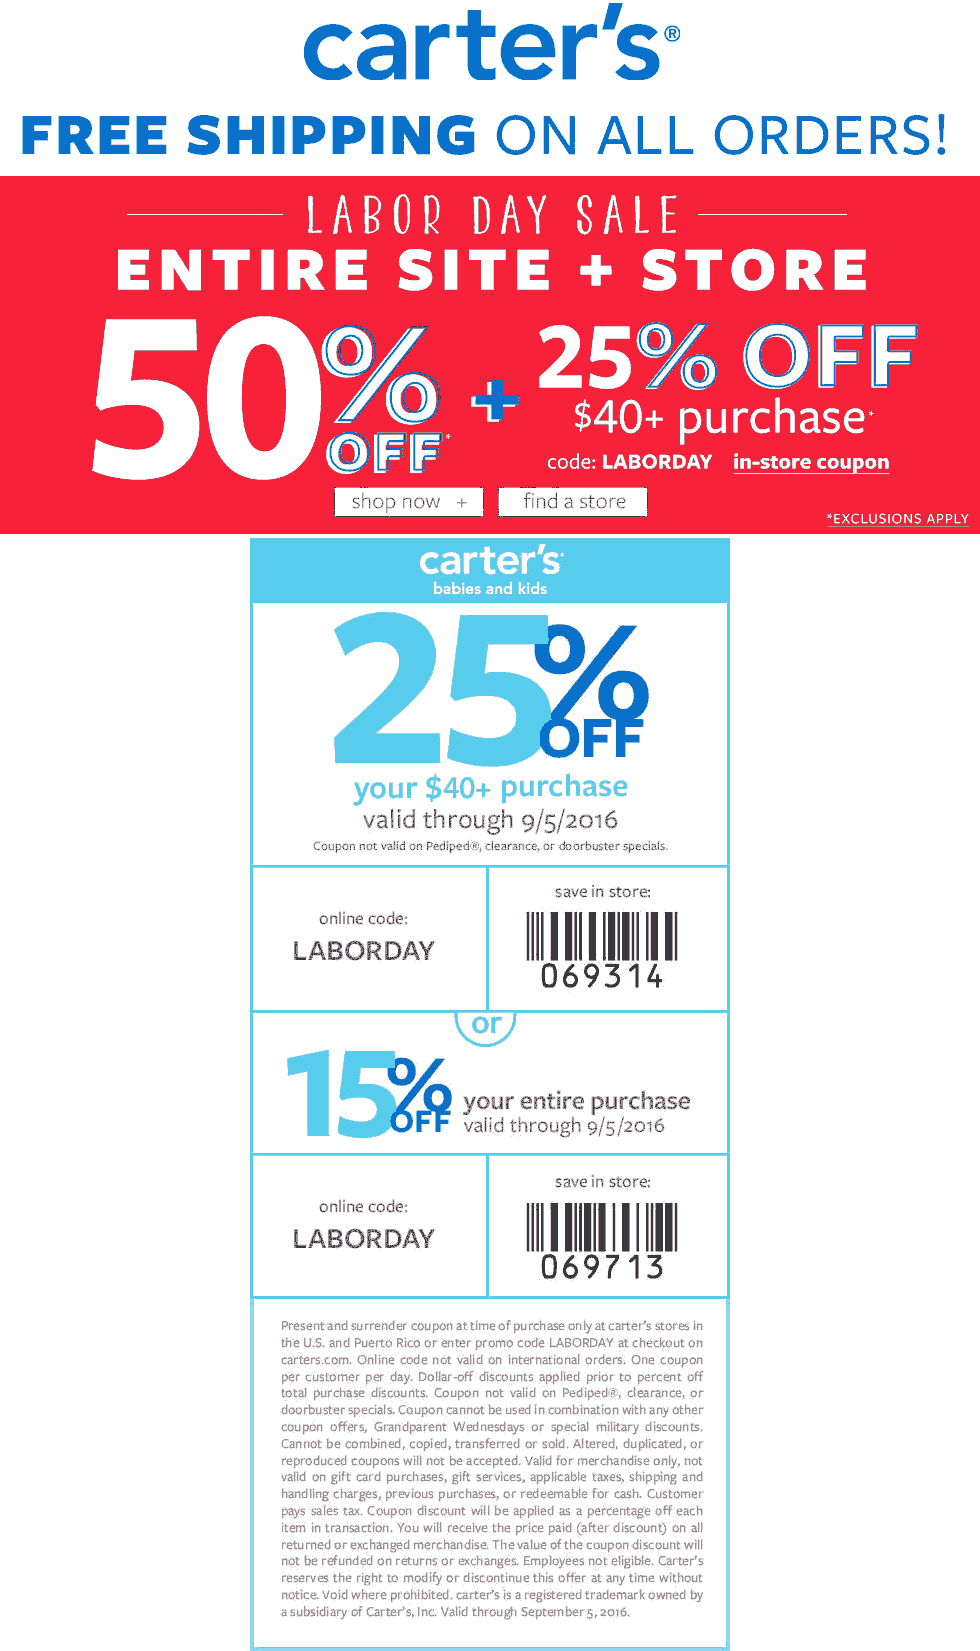 Carters Coupon March 2017 50% off everything + another 25% off $40 at Carters, or online via promo code LABORDAY